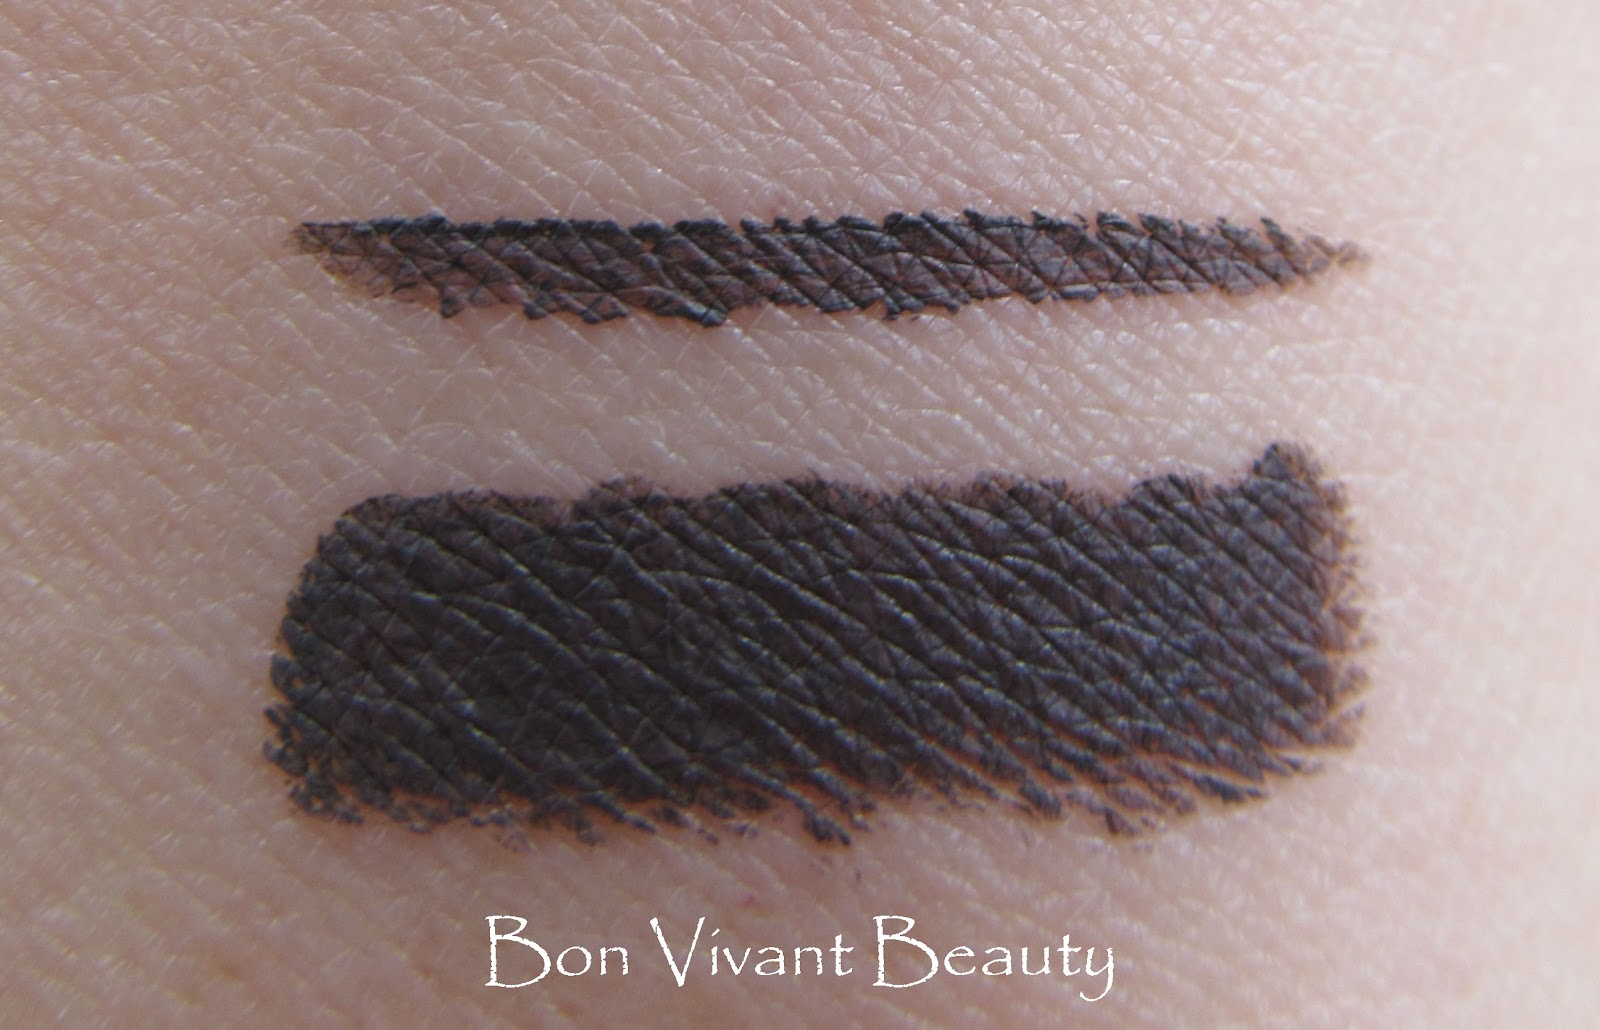 Infallible Lacquer Liner 24H by L'Oreal #22